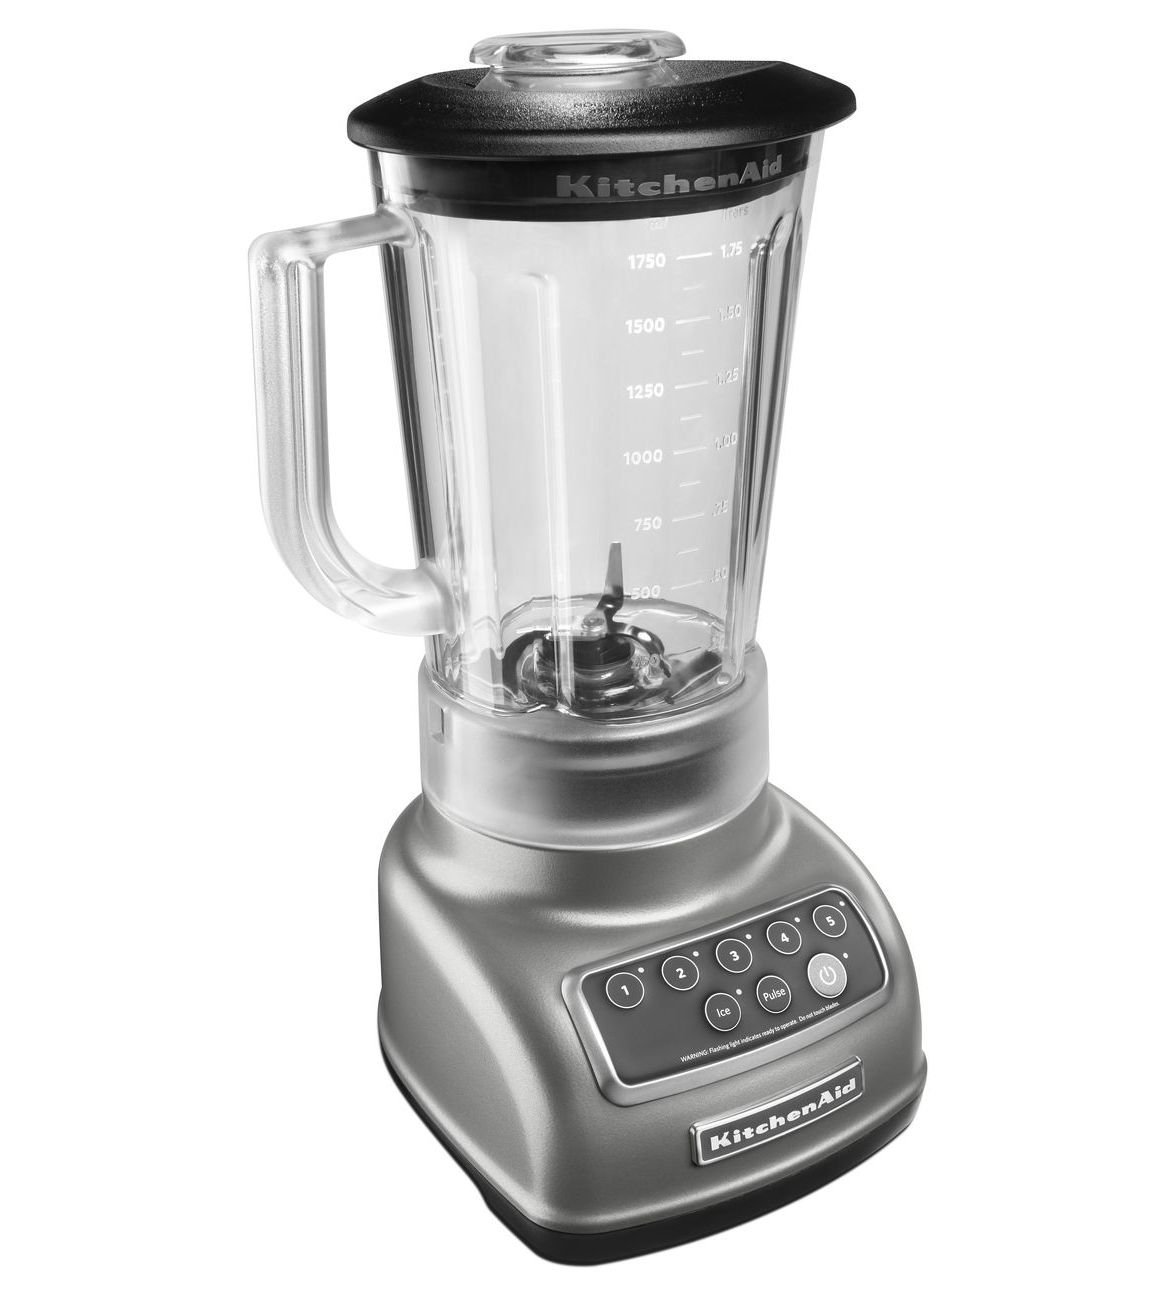 KitchenAid RKSB1570CU 5-Speed Blender with 56-Ounce BPA-Free Pitcher - Silver (Certified Refurbished)